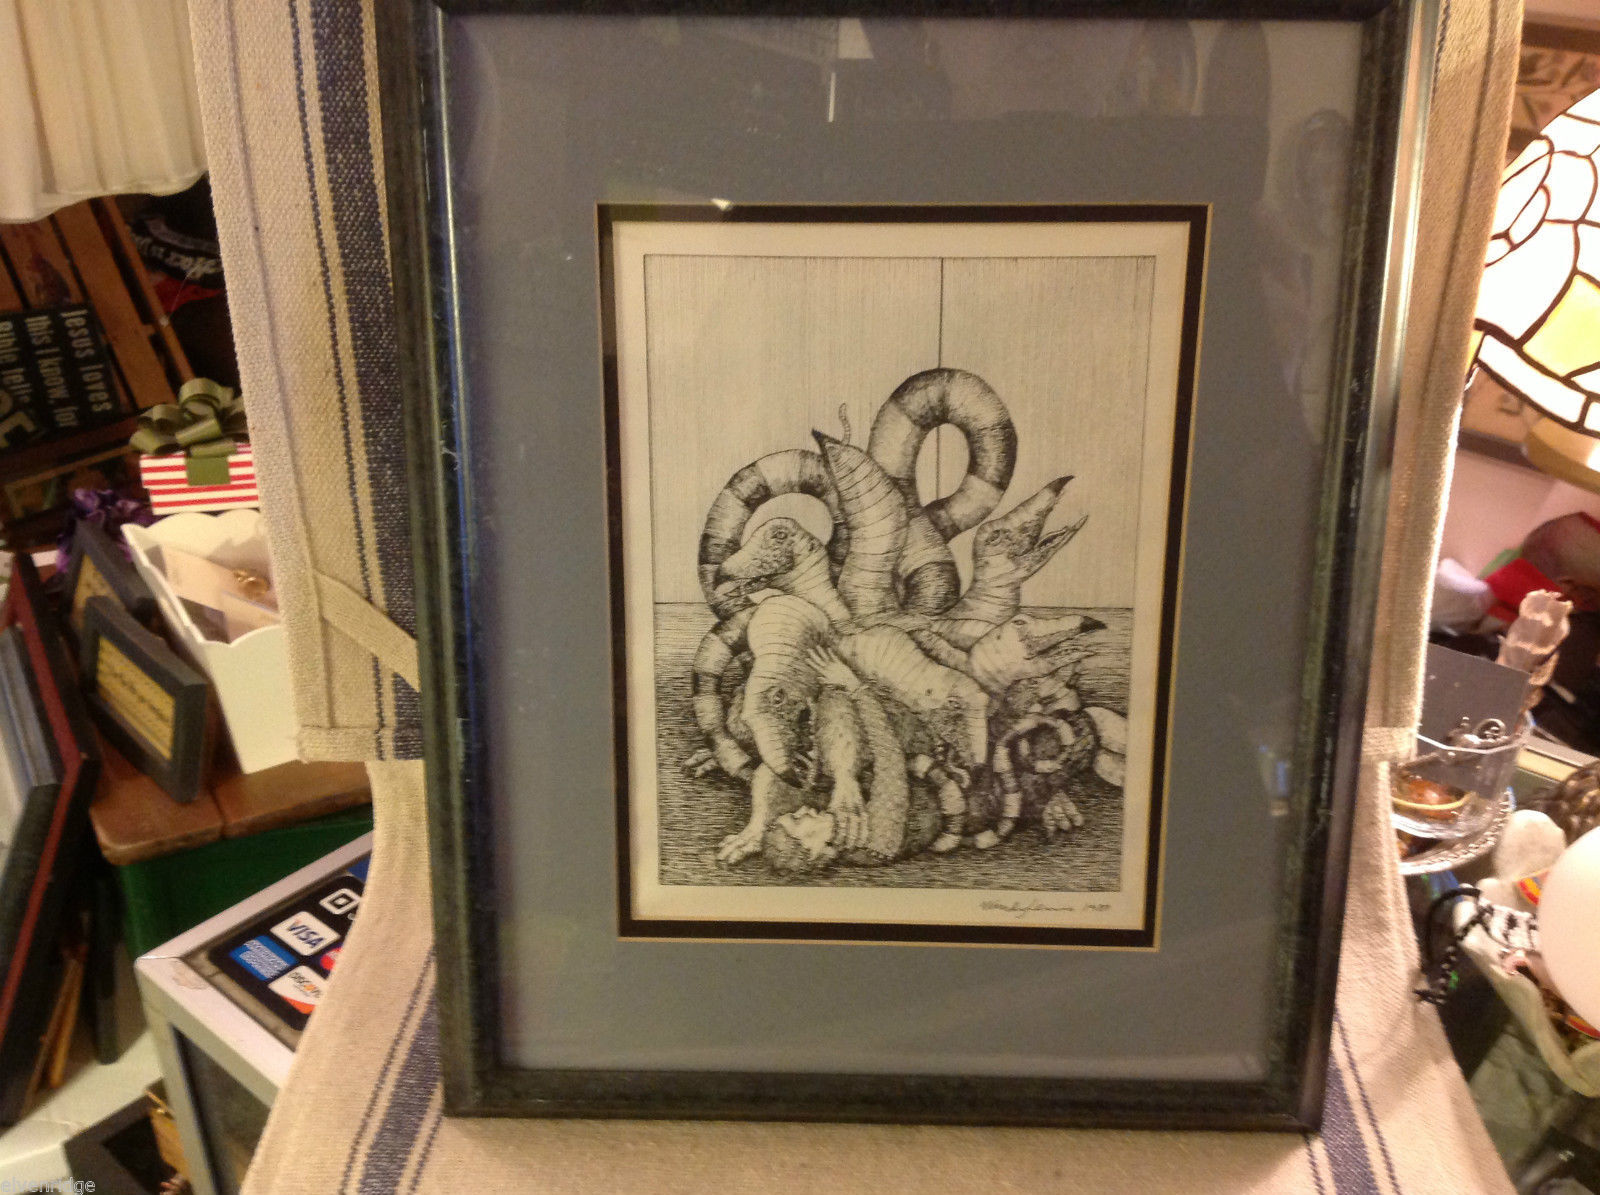 Children's book illustrator Wendy Lewis pen and ink mythical creature in fight